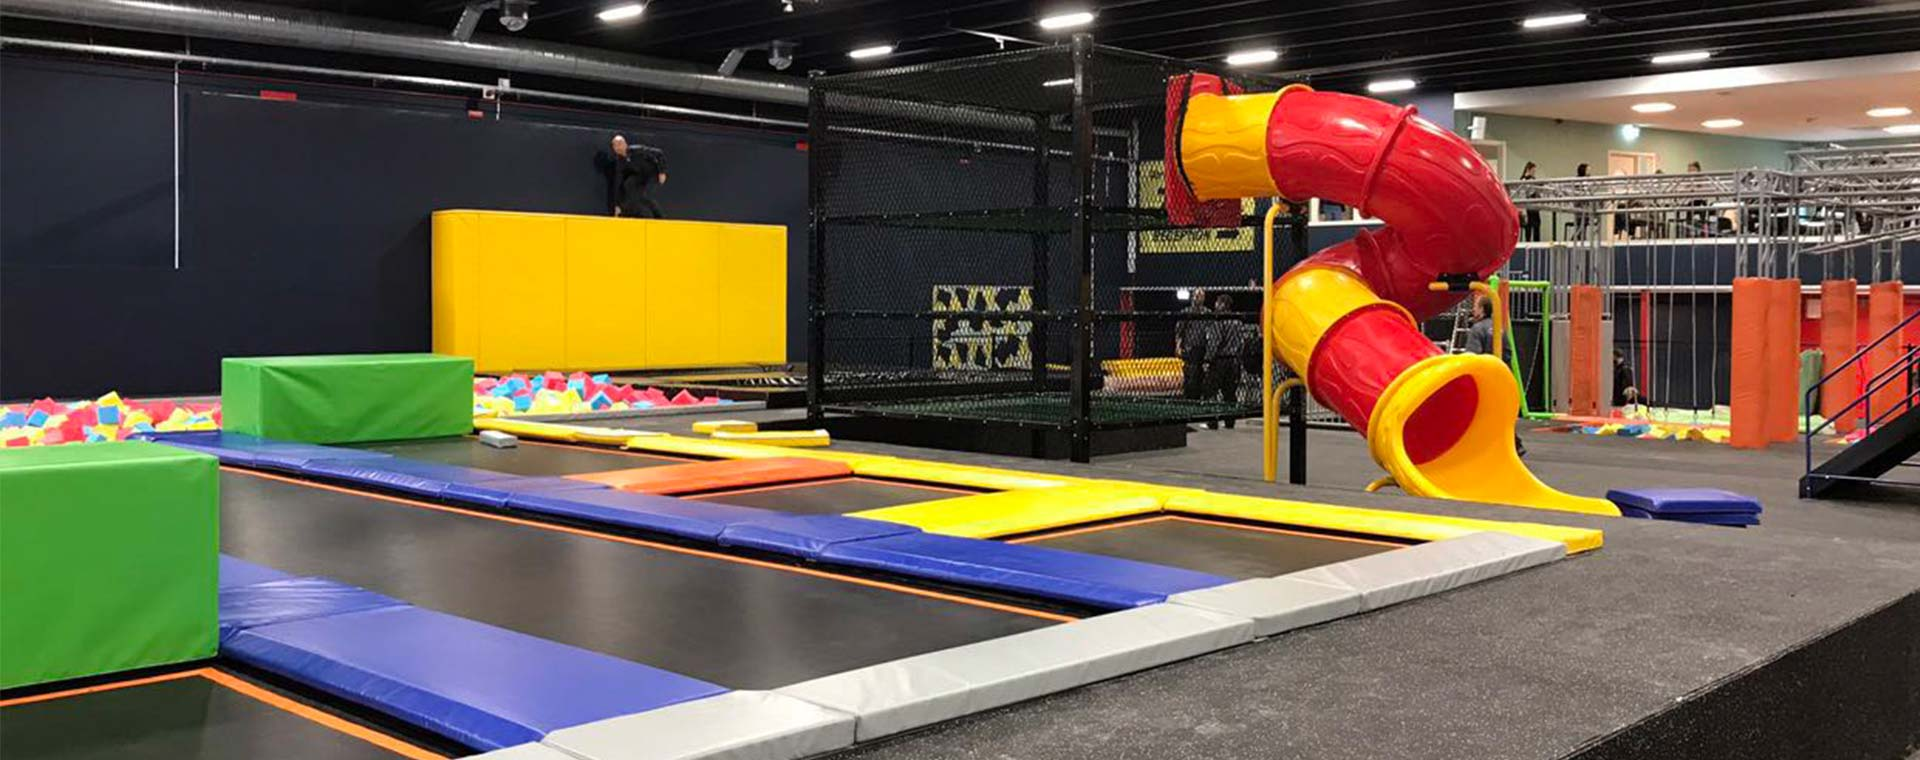 China Top Trampoline Park Manufacturer-Liben Group Corporation